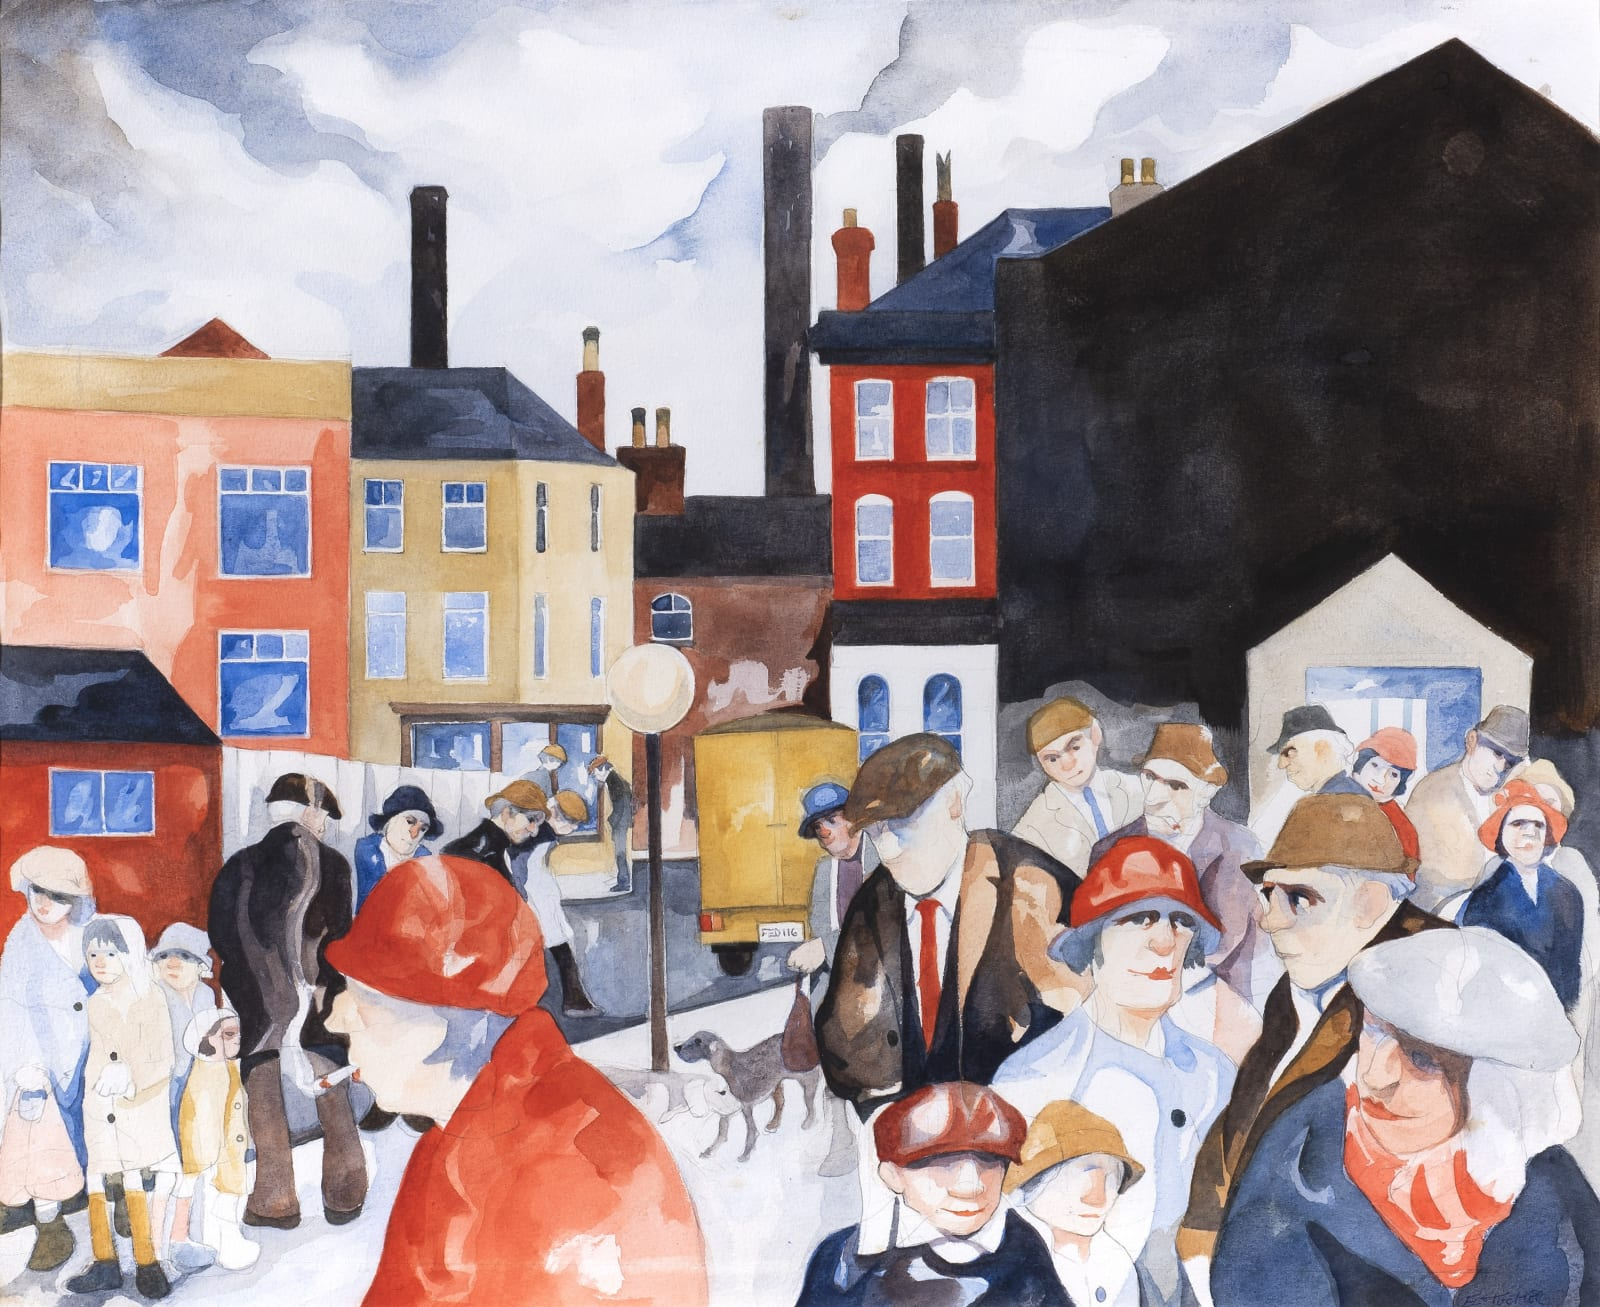 Eric Tucker, 'Backstreet Crowd', Watercolour and pencil on paper, 14 5/8 x 17 3/4 in, 37 x 45 cm